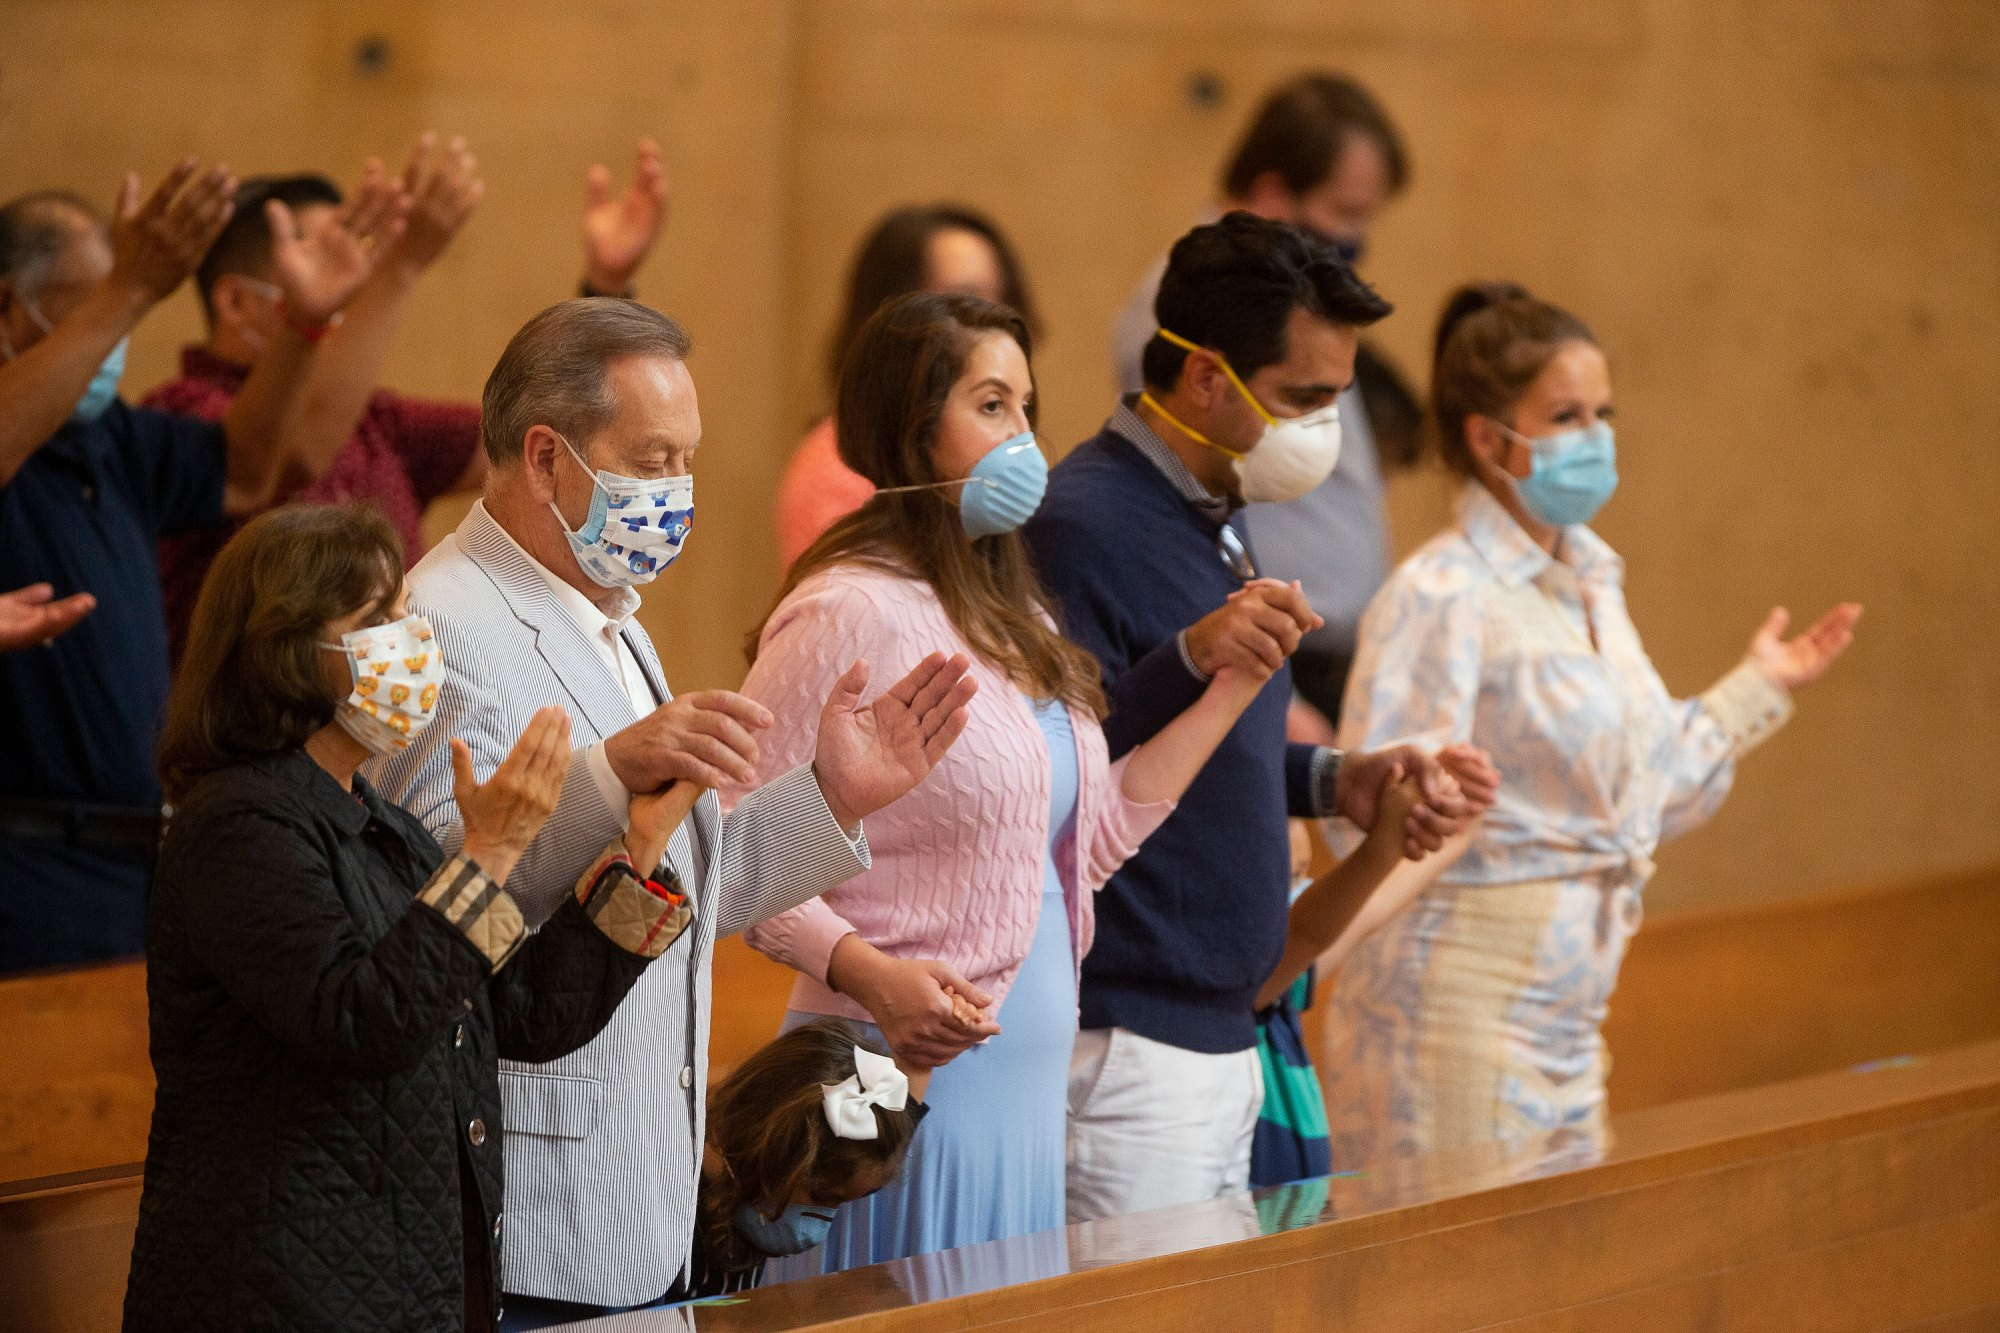 Family members hold hands as they pray at the first English Mass with faithful present at the Cathedral of Our Lady of the Angels in downtown Los Angeles, Sunday, June 7, 2020. Catholic parishes throughout the Archdiocese of Los Angeles suspended public Mass in March amid the coronavirus outbreak. (AP Photo/Damian Dovarganes)